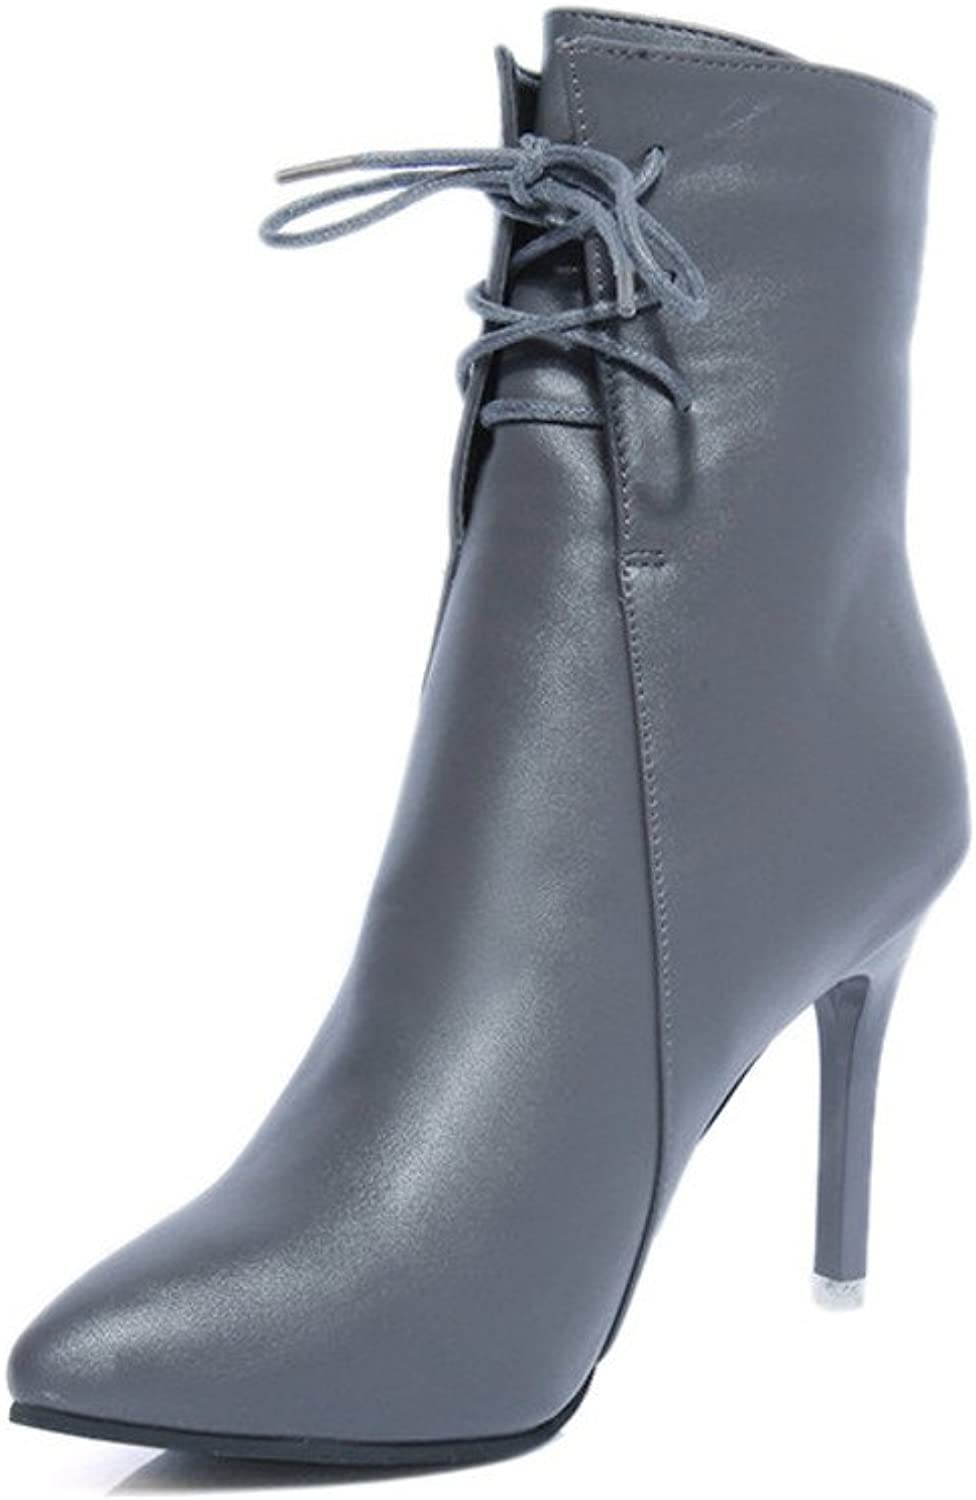 Sexy Boots in Autumn and Winter Lace Stiletto Boots high Heels Pointy Boots Martin Short Women's Boots